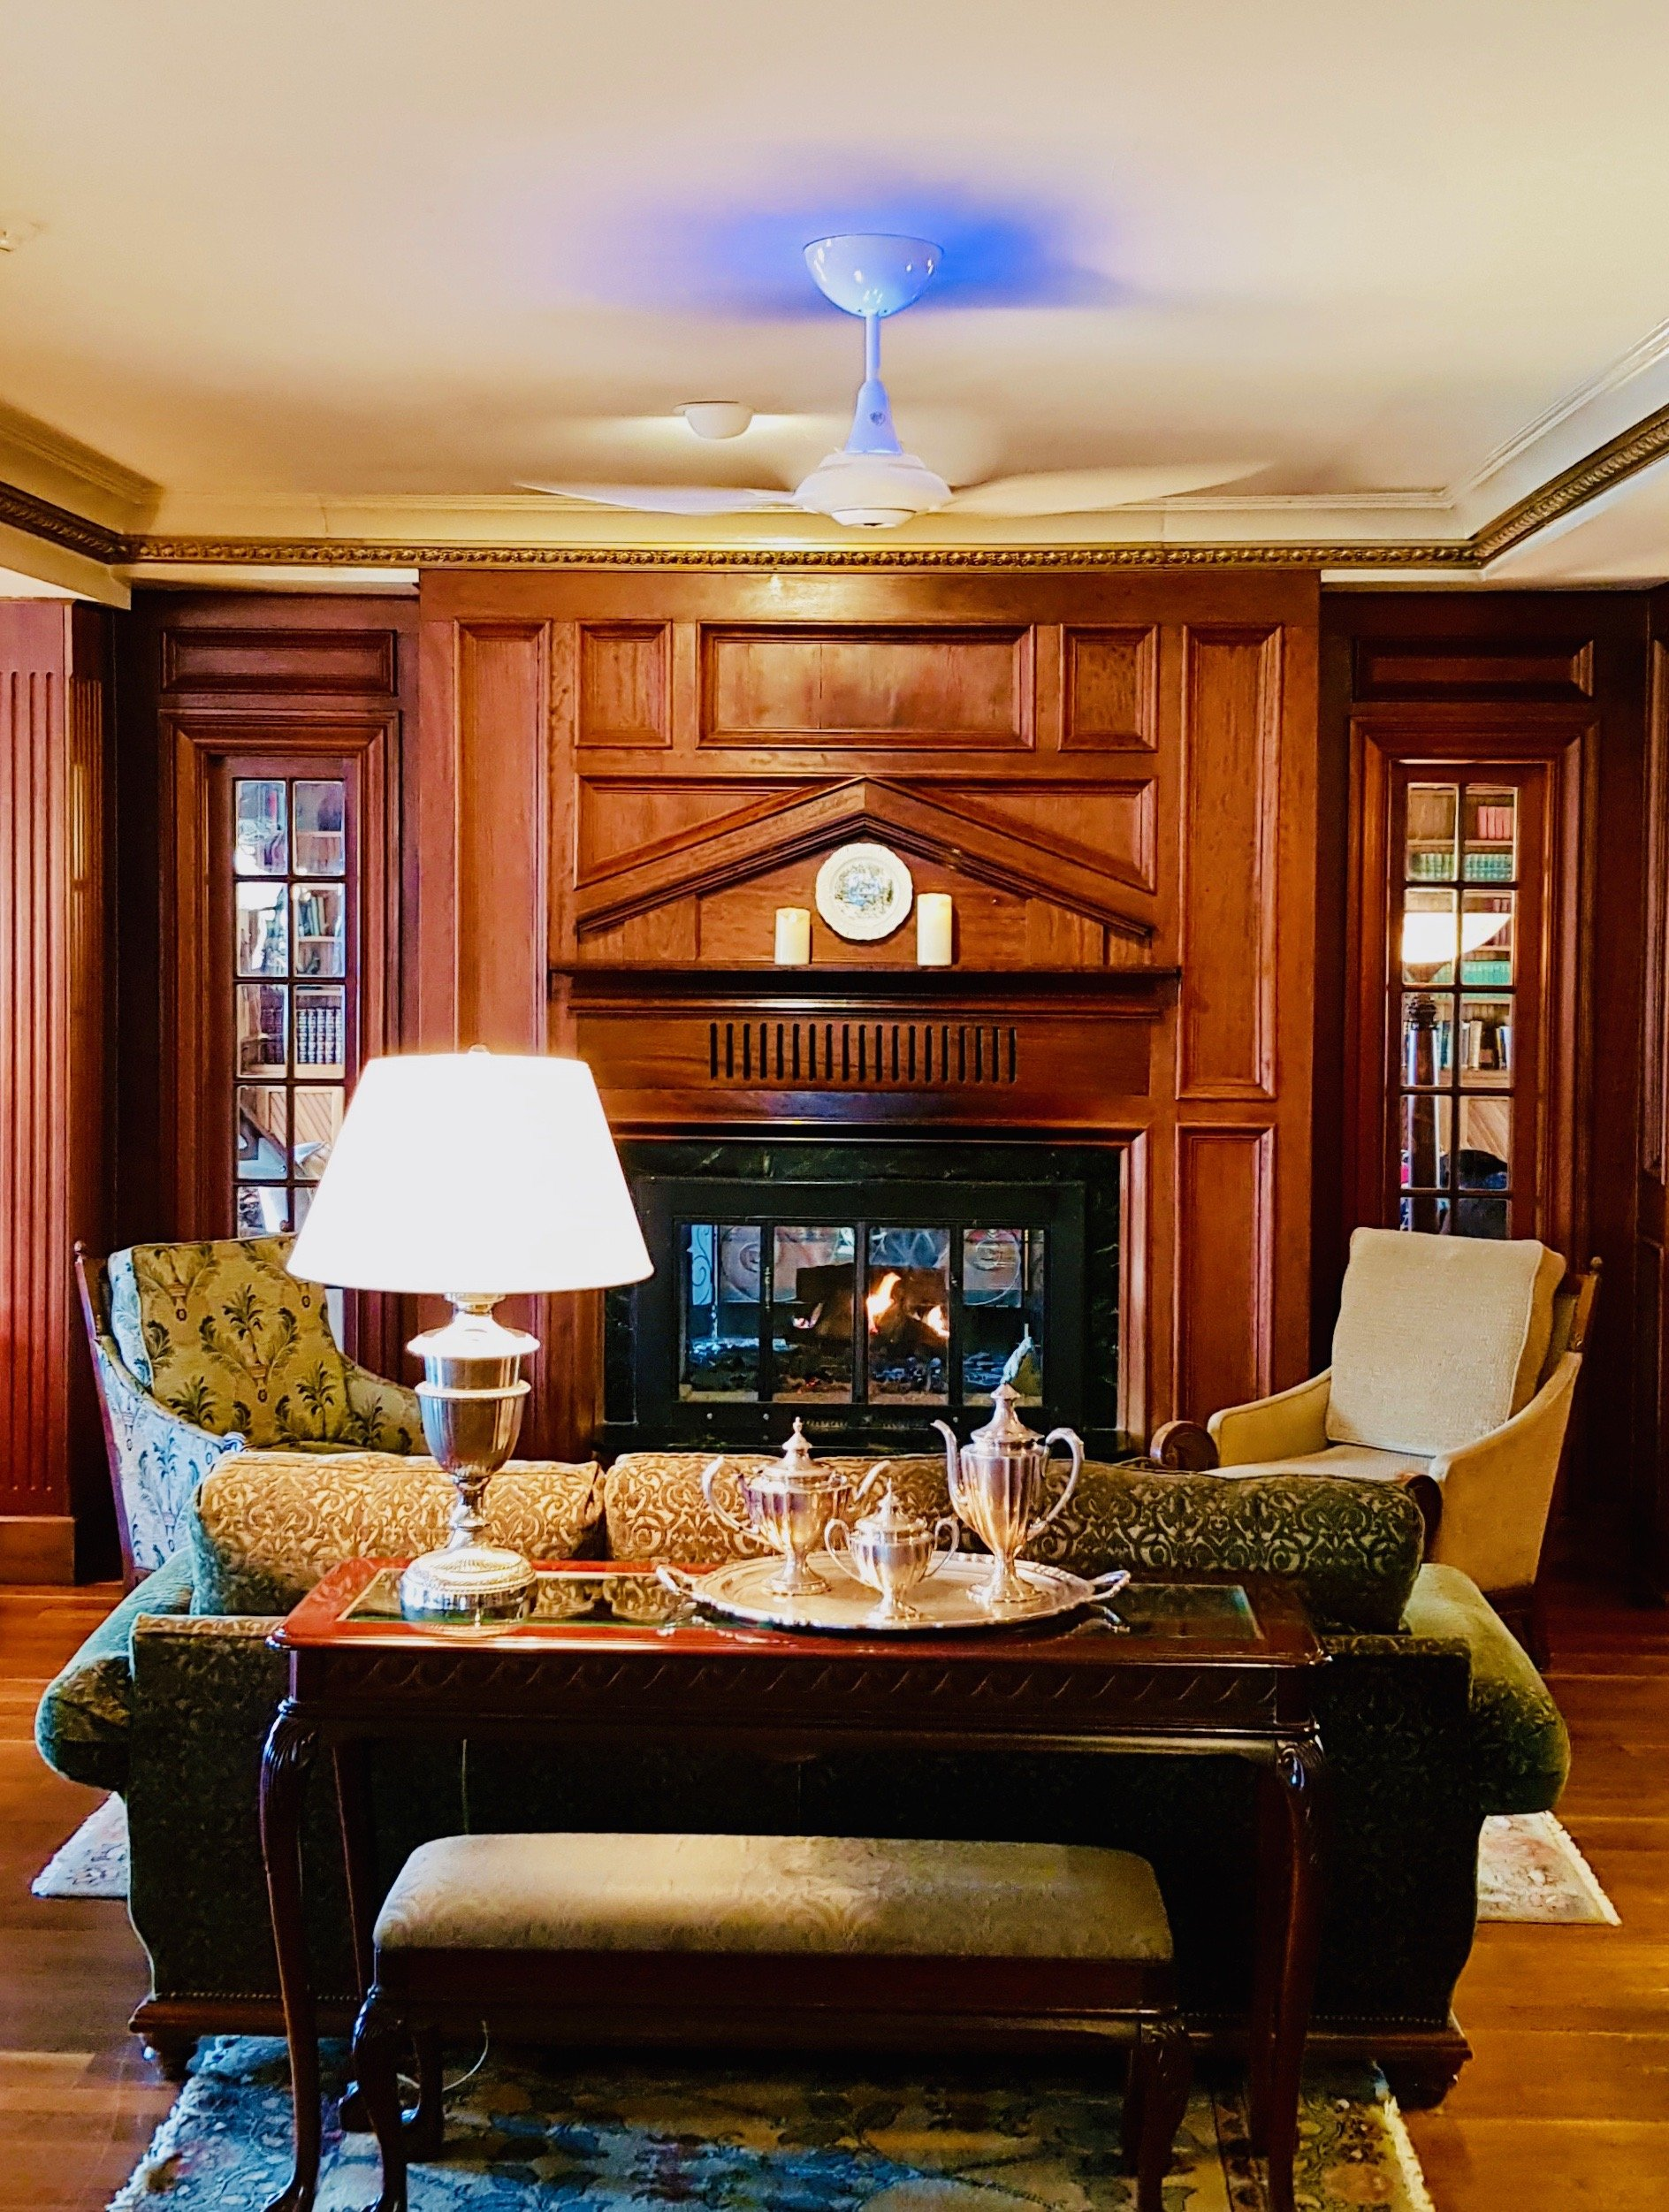 A wood-panelled lobby fireplace and seating area with a UV light ceiling fan